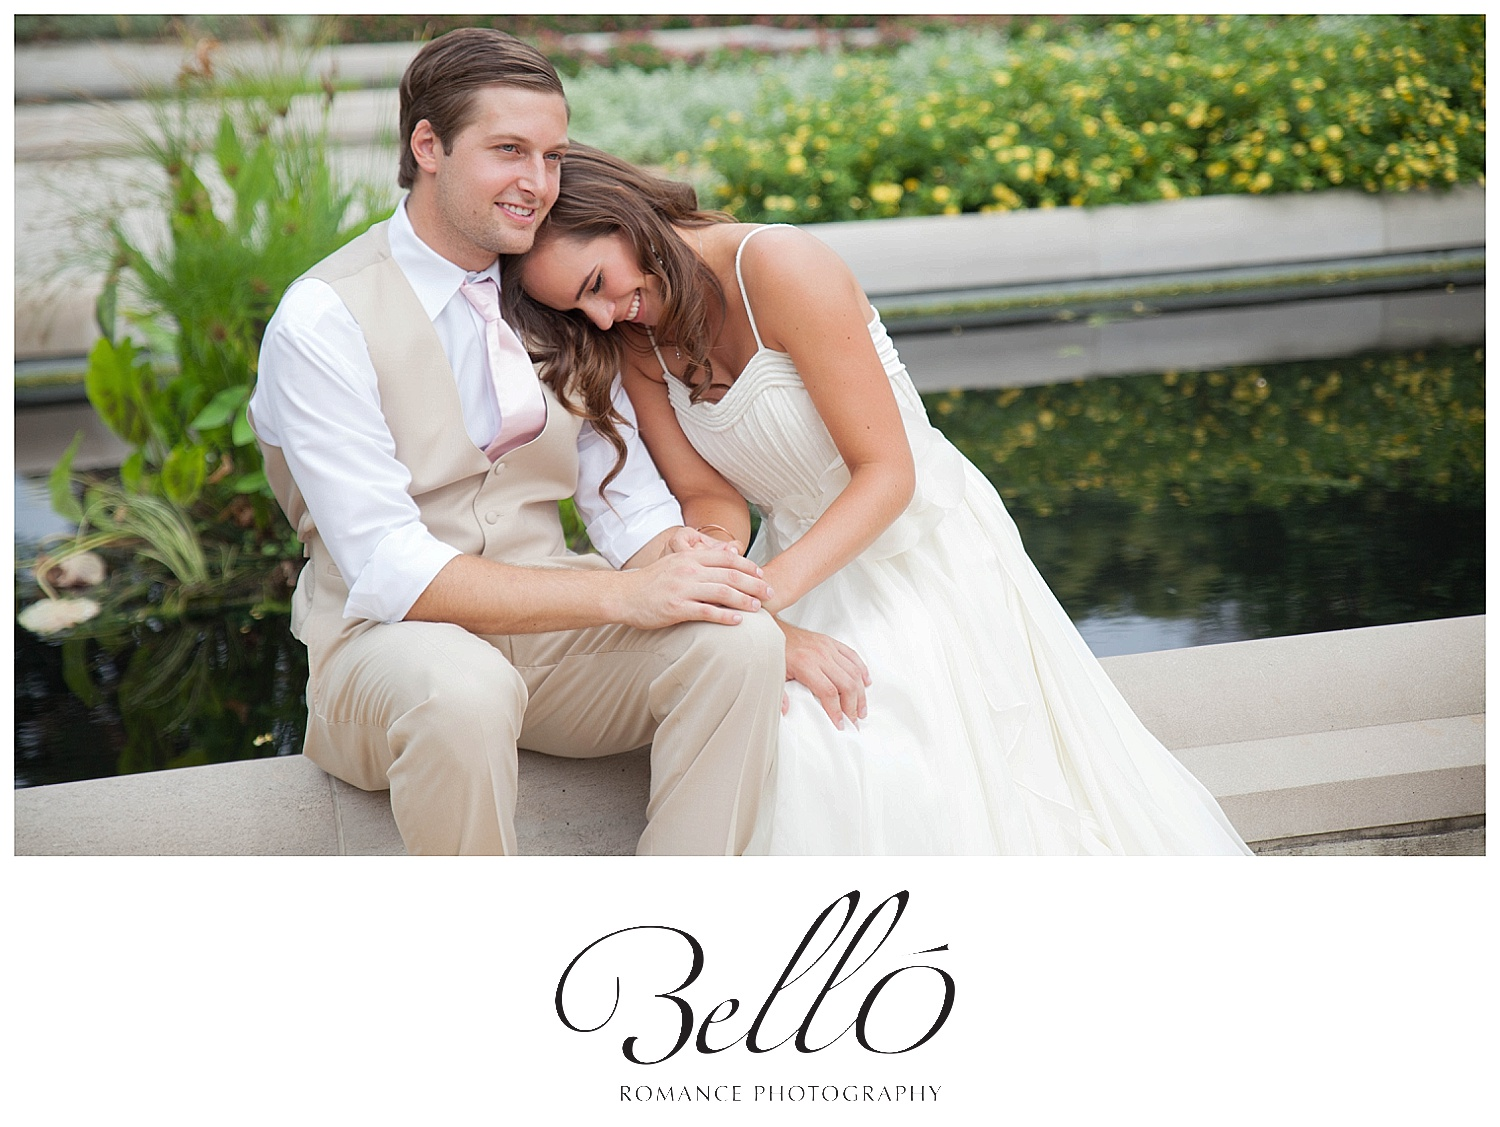 Bello-Romance-Photography-Wedding-Planning-Indianapolis